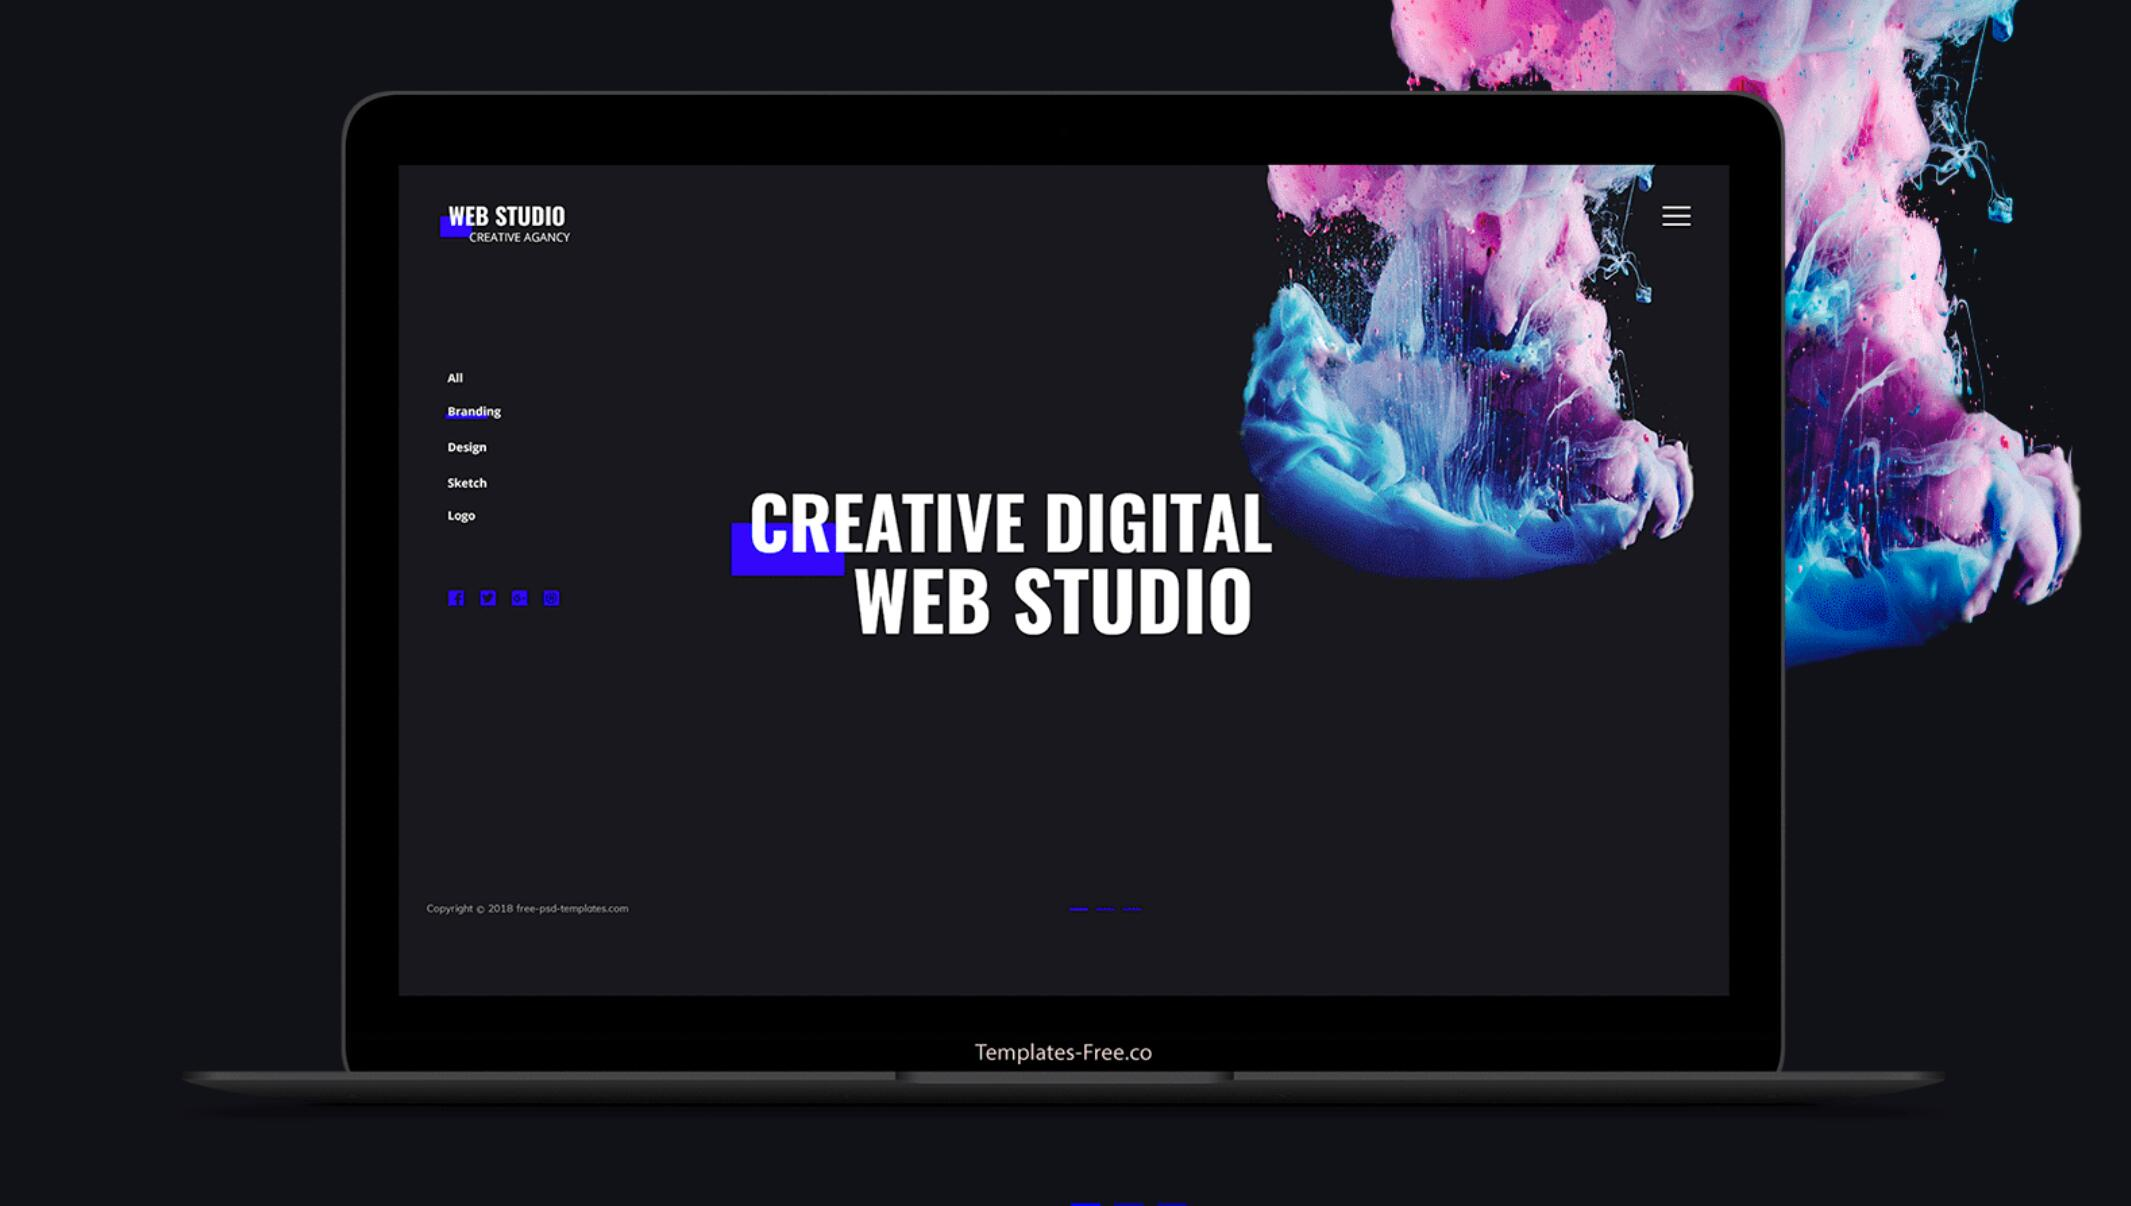 Web Studio – Free Responsive PSD Agency Website Mockup